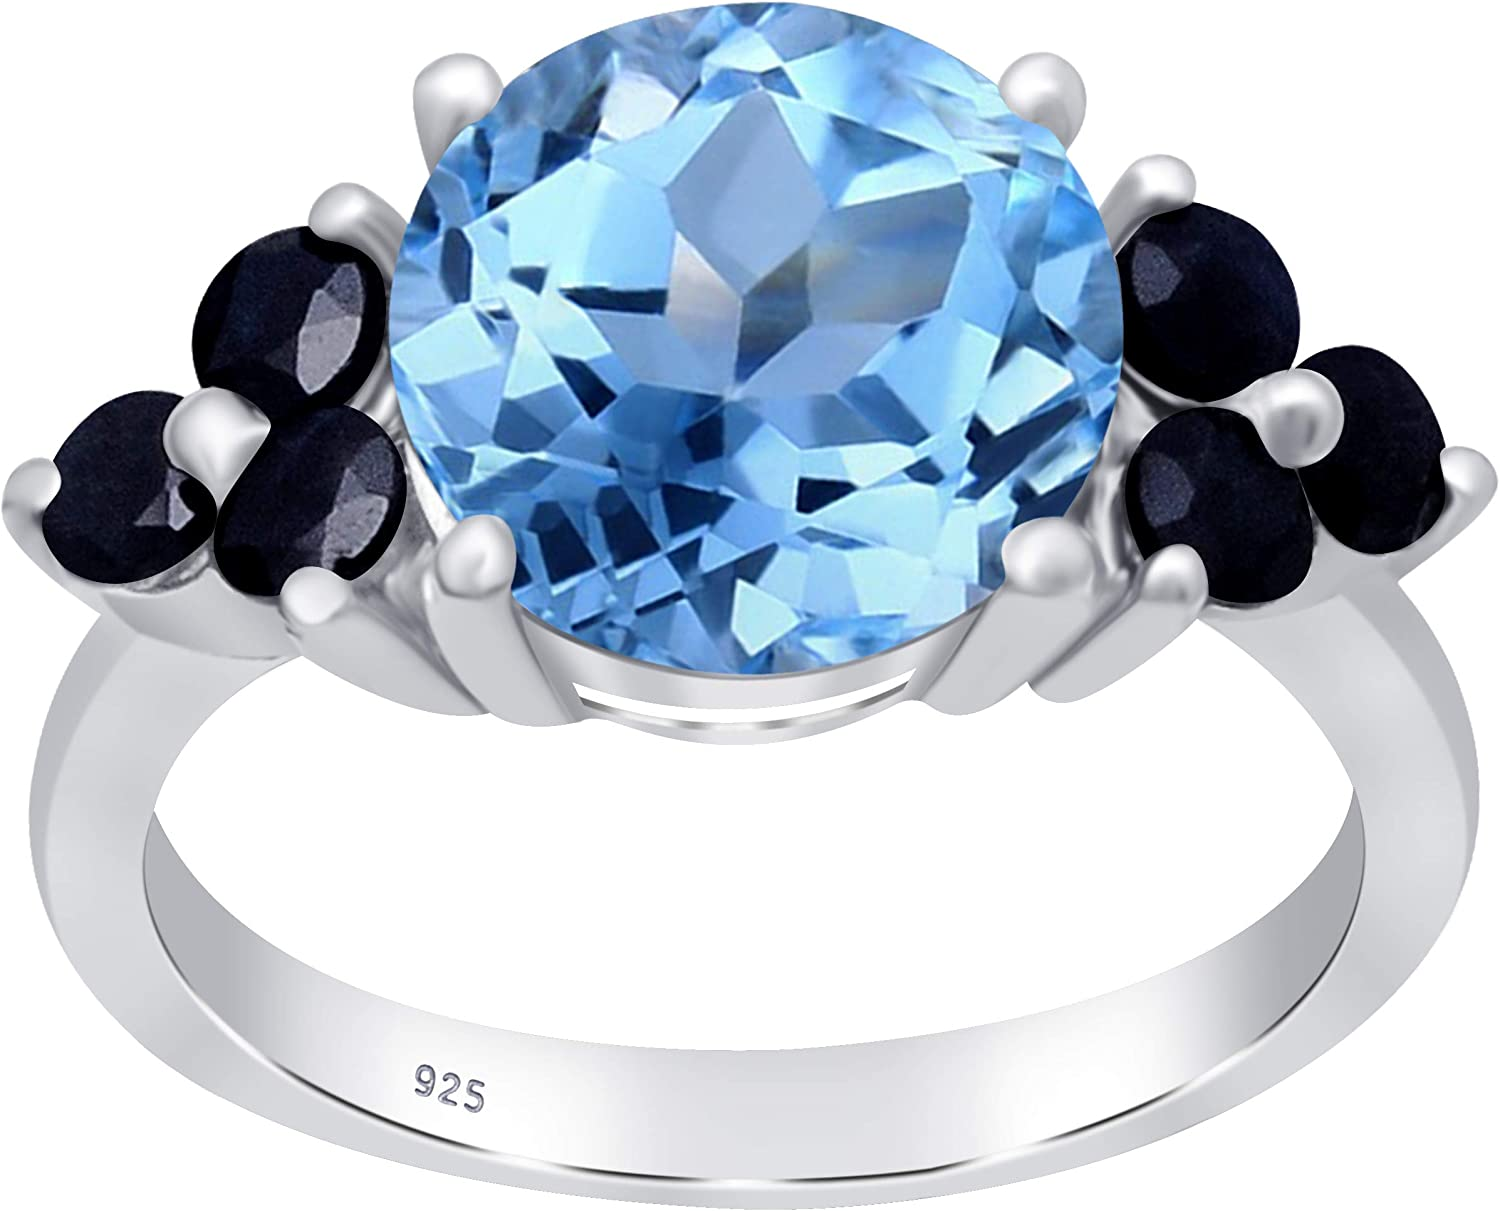 Orchid Jewelry 5.40 Ct Natural Round Blue Topaz and Sapphire 925 Sterling Silver Engagement Ring for Women A December Birthstone Gemstone-A Beautiful and Unique Gift for Wife